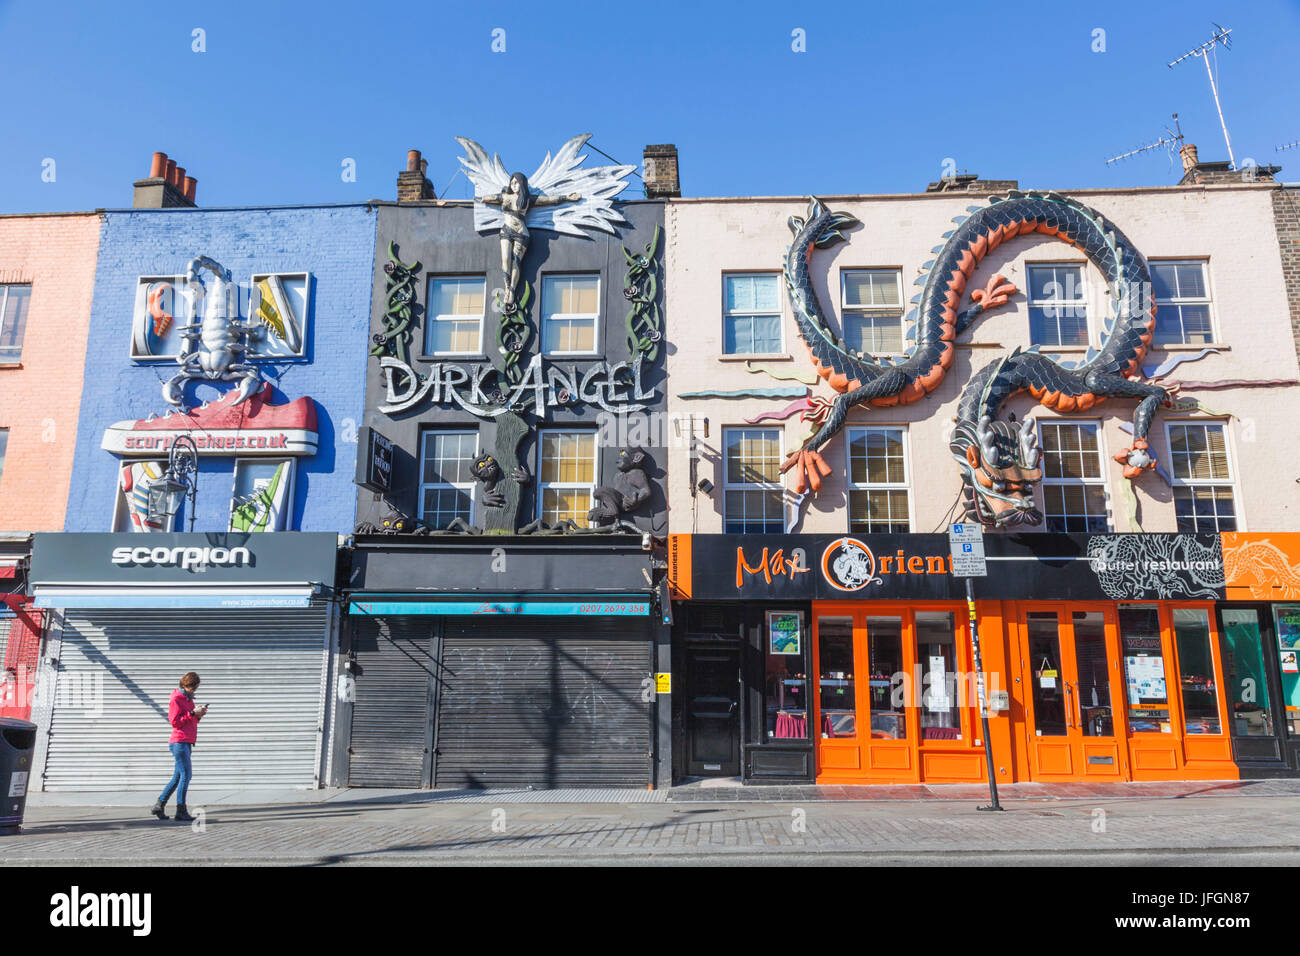 England, London, Camden, Colourful Shop Fronts - Stock Image